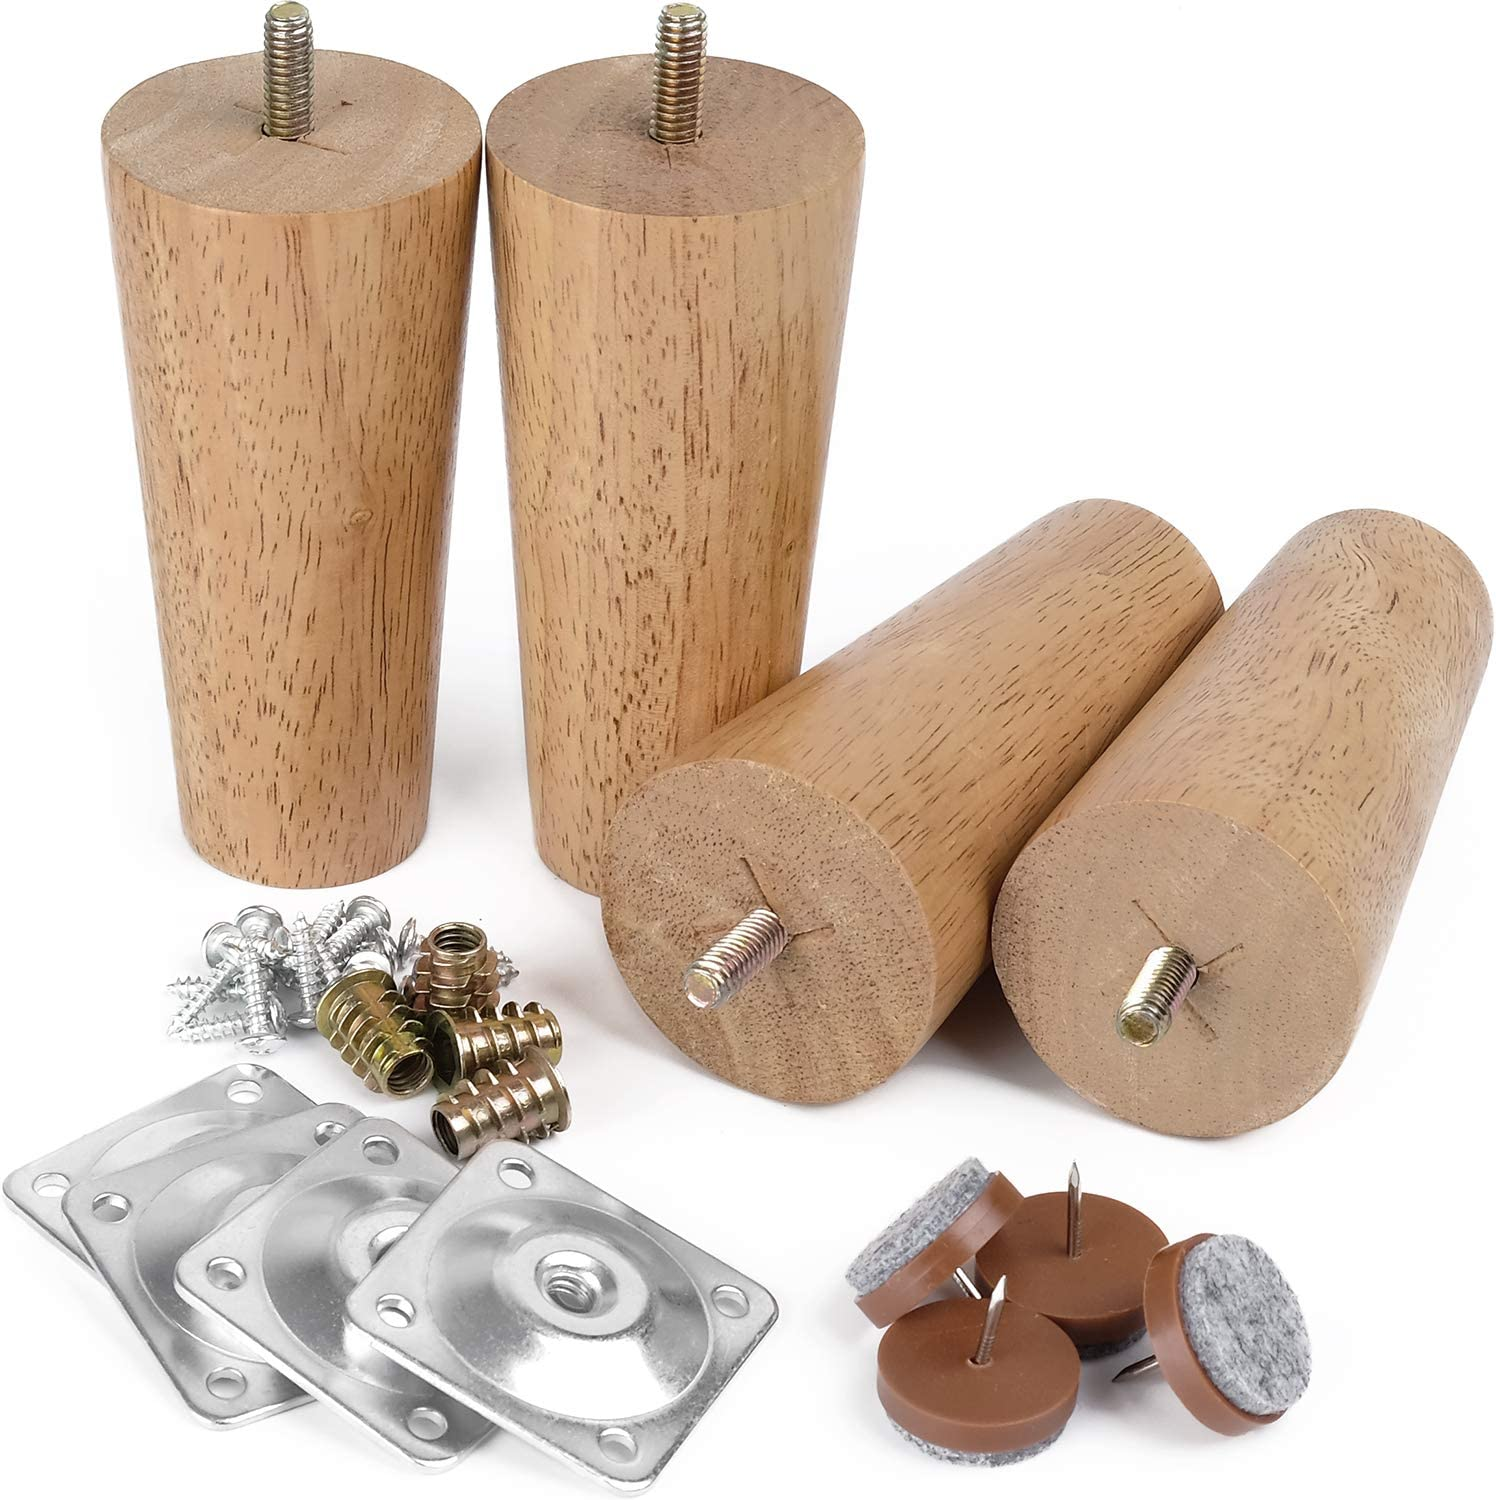 """Furniture Legs Sofa Legs 5"""" Full-Set Chair Legs Tapered Wood Legs 5/16"""" Thread for Furniture Sofa Couch Ottoman Coffee Table Bench Chair, Replacement Leg w/Leg Mounting Plates &Felt Floor Protectors"""